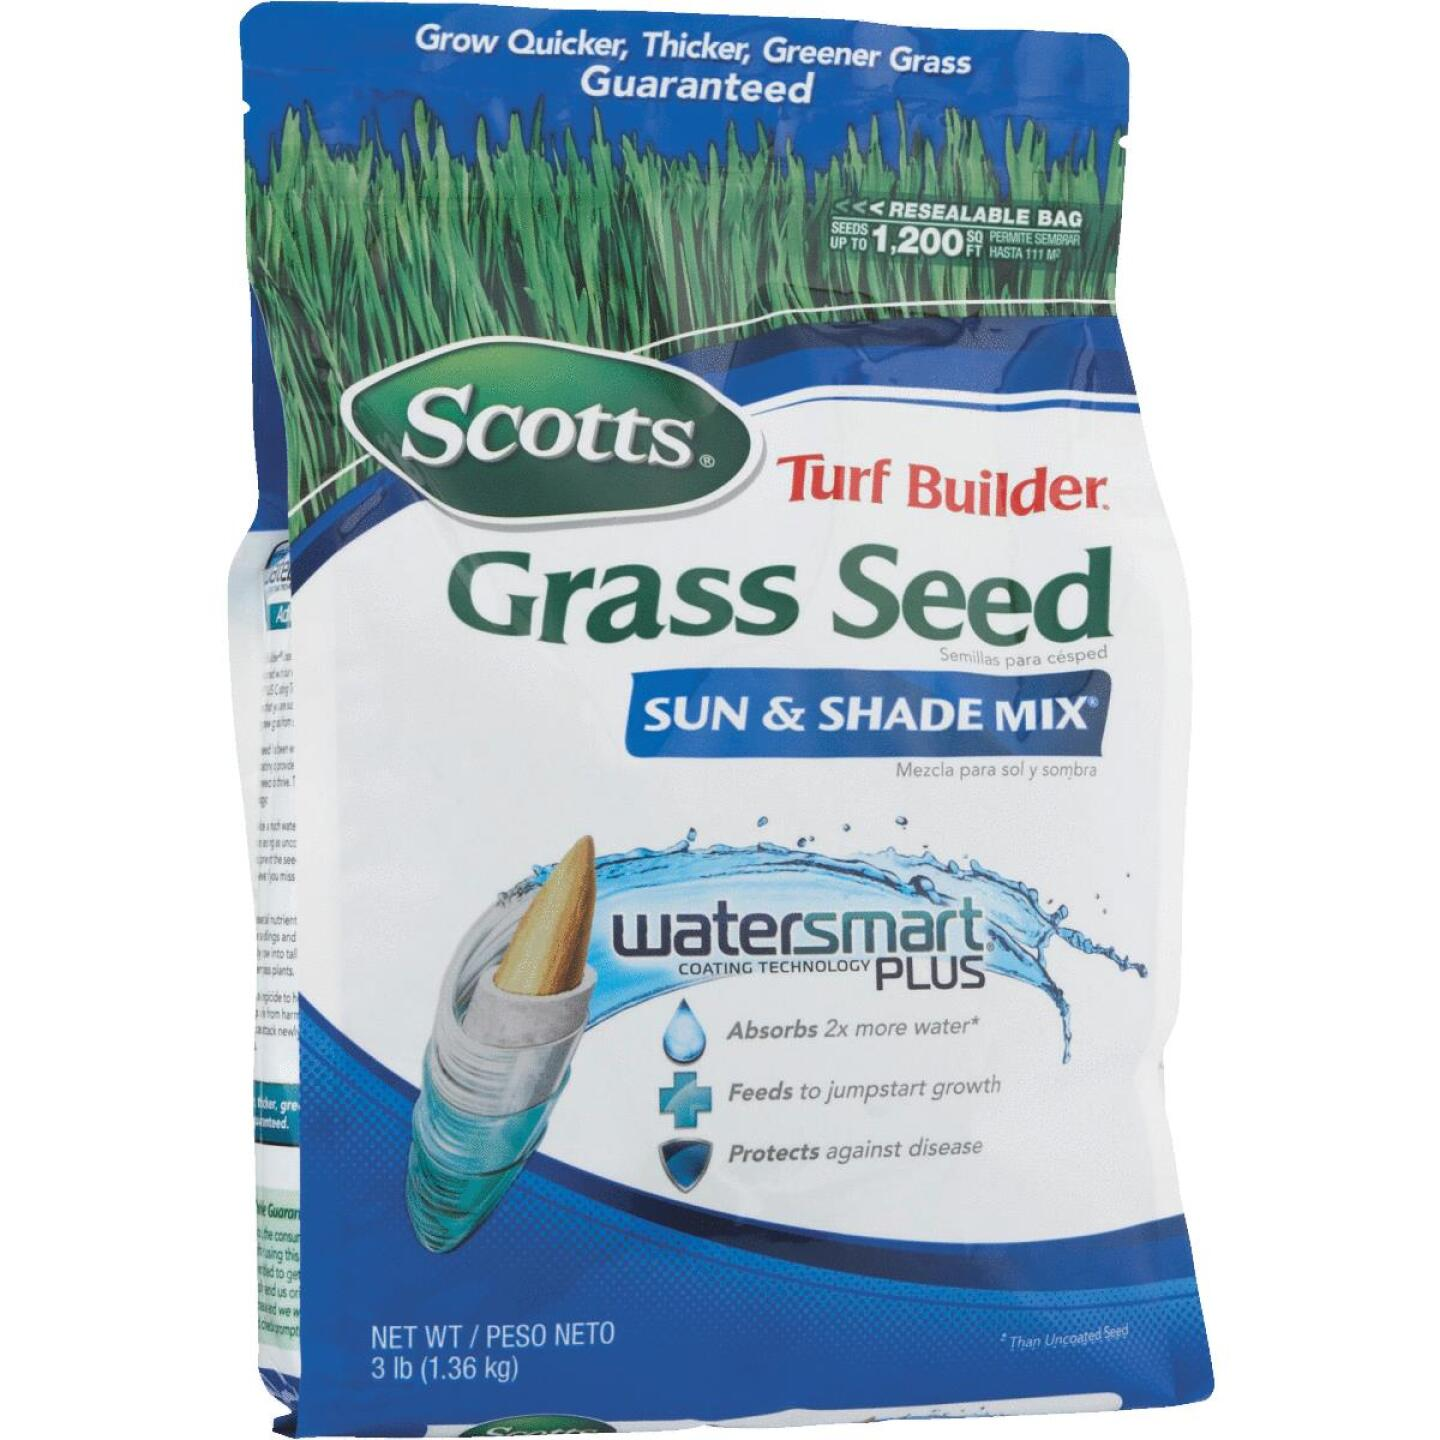 Scotts Turf Builder 3 Lb. Up To 1200 Sq. Ft. Coverage Sun & Shade Grass Seed Image 6